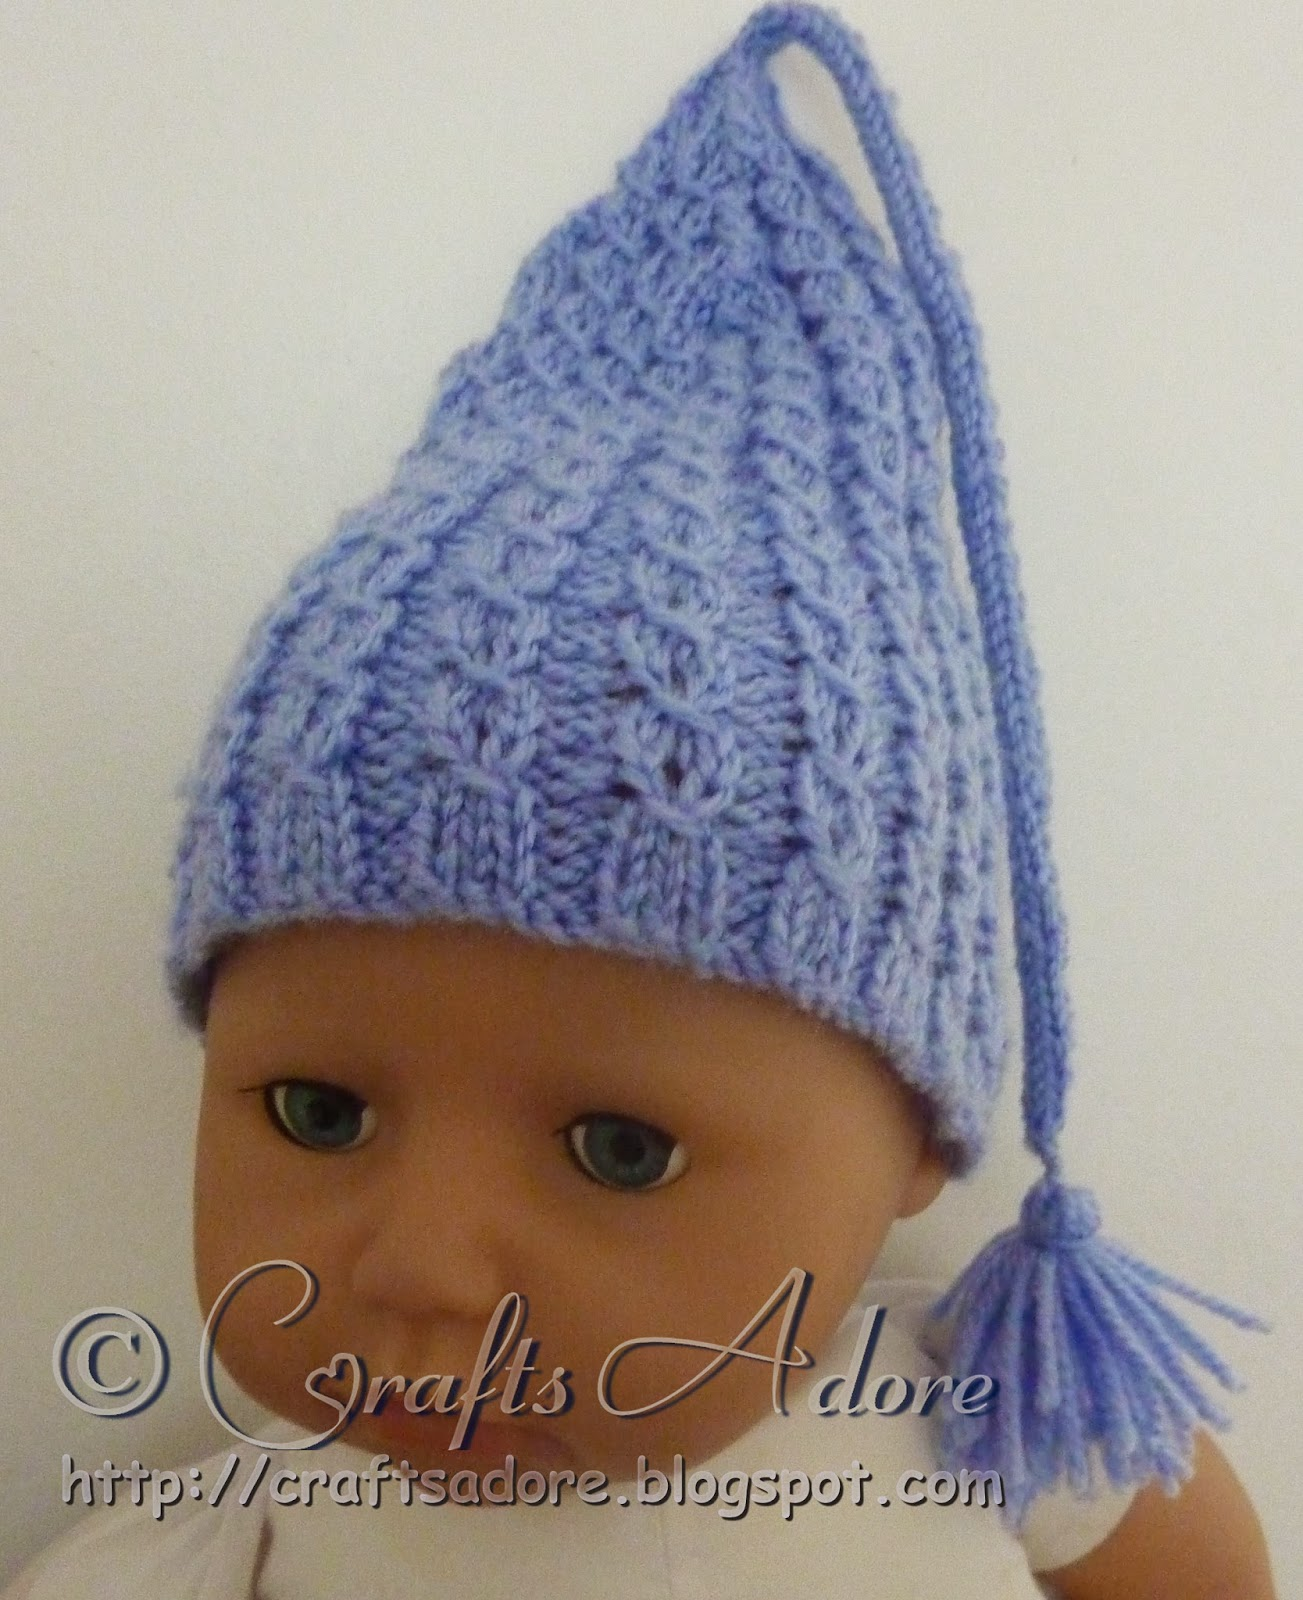 Baby Gnome Hat Knitting Pattern : CraftsAdore: Knitted Baby Hat - Incredible Expanding Gnome Cap